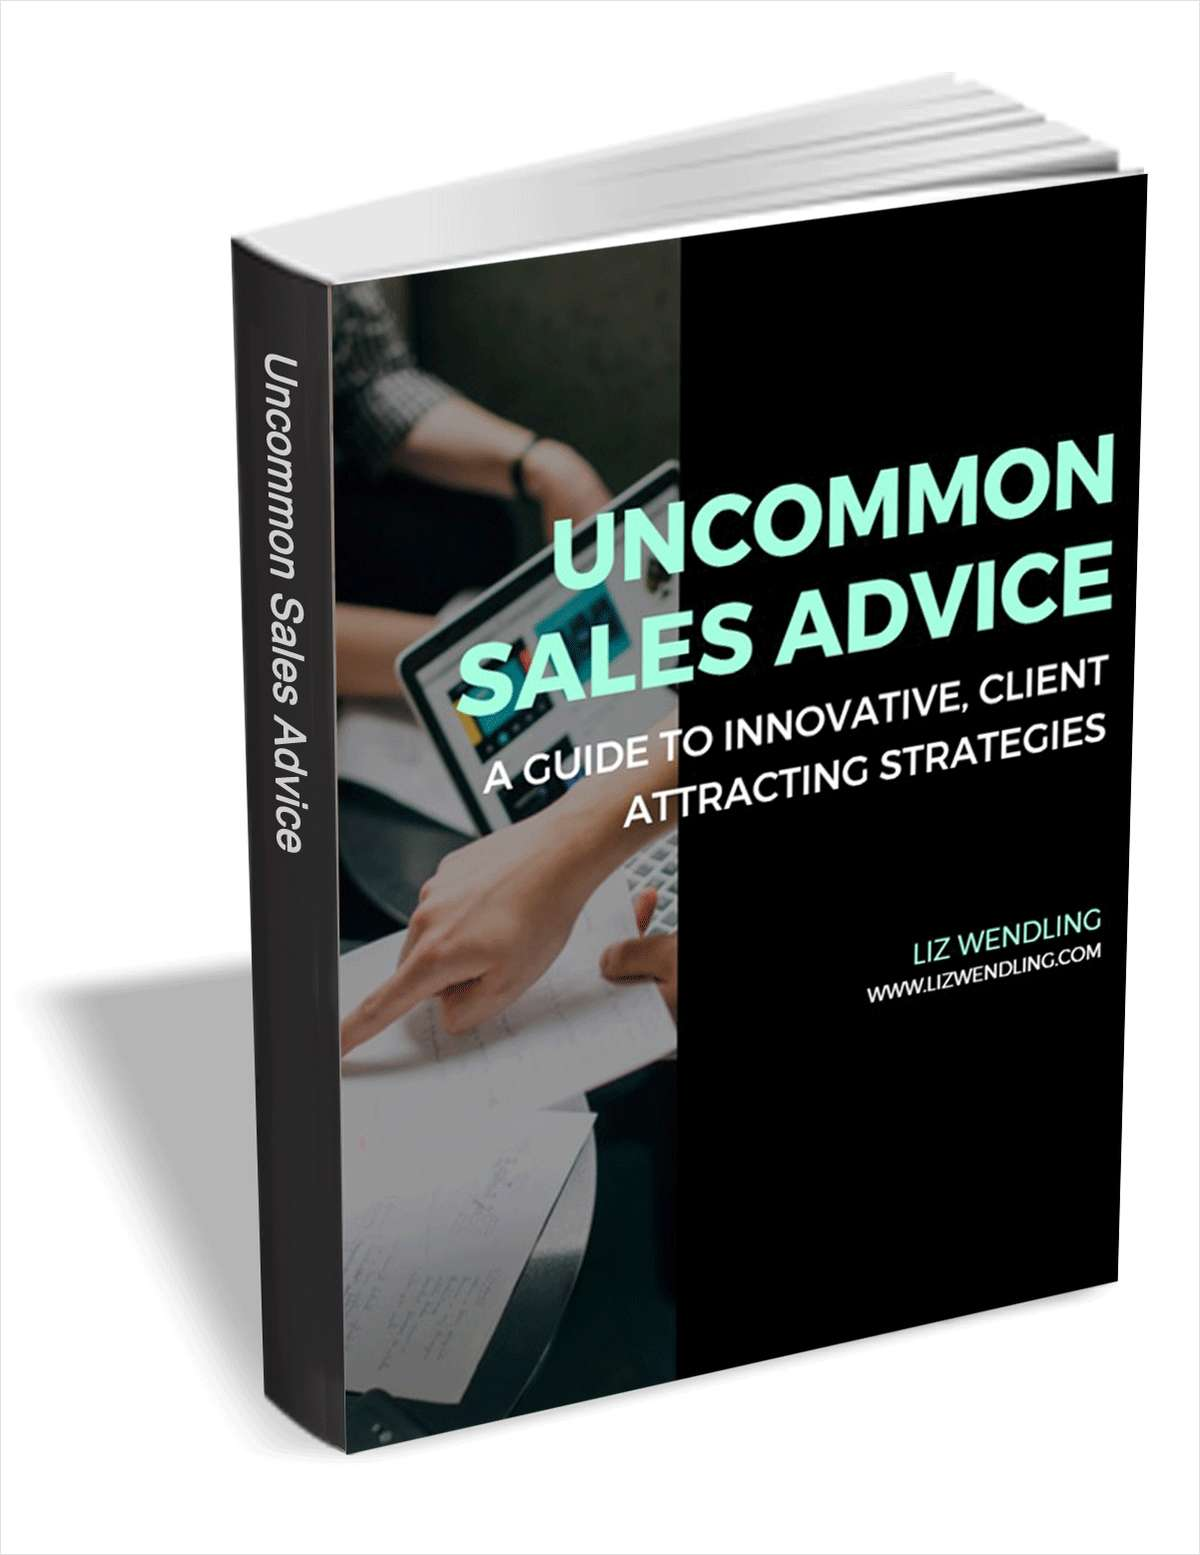 Uncommon Sales Advice - A Guide to Innovative, Client-Attracting Sales Strategies